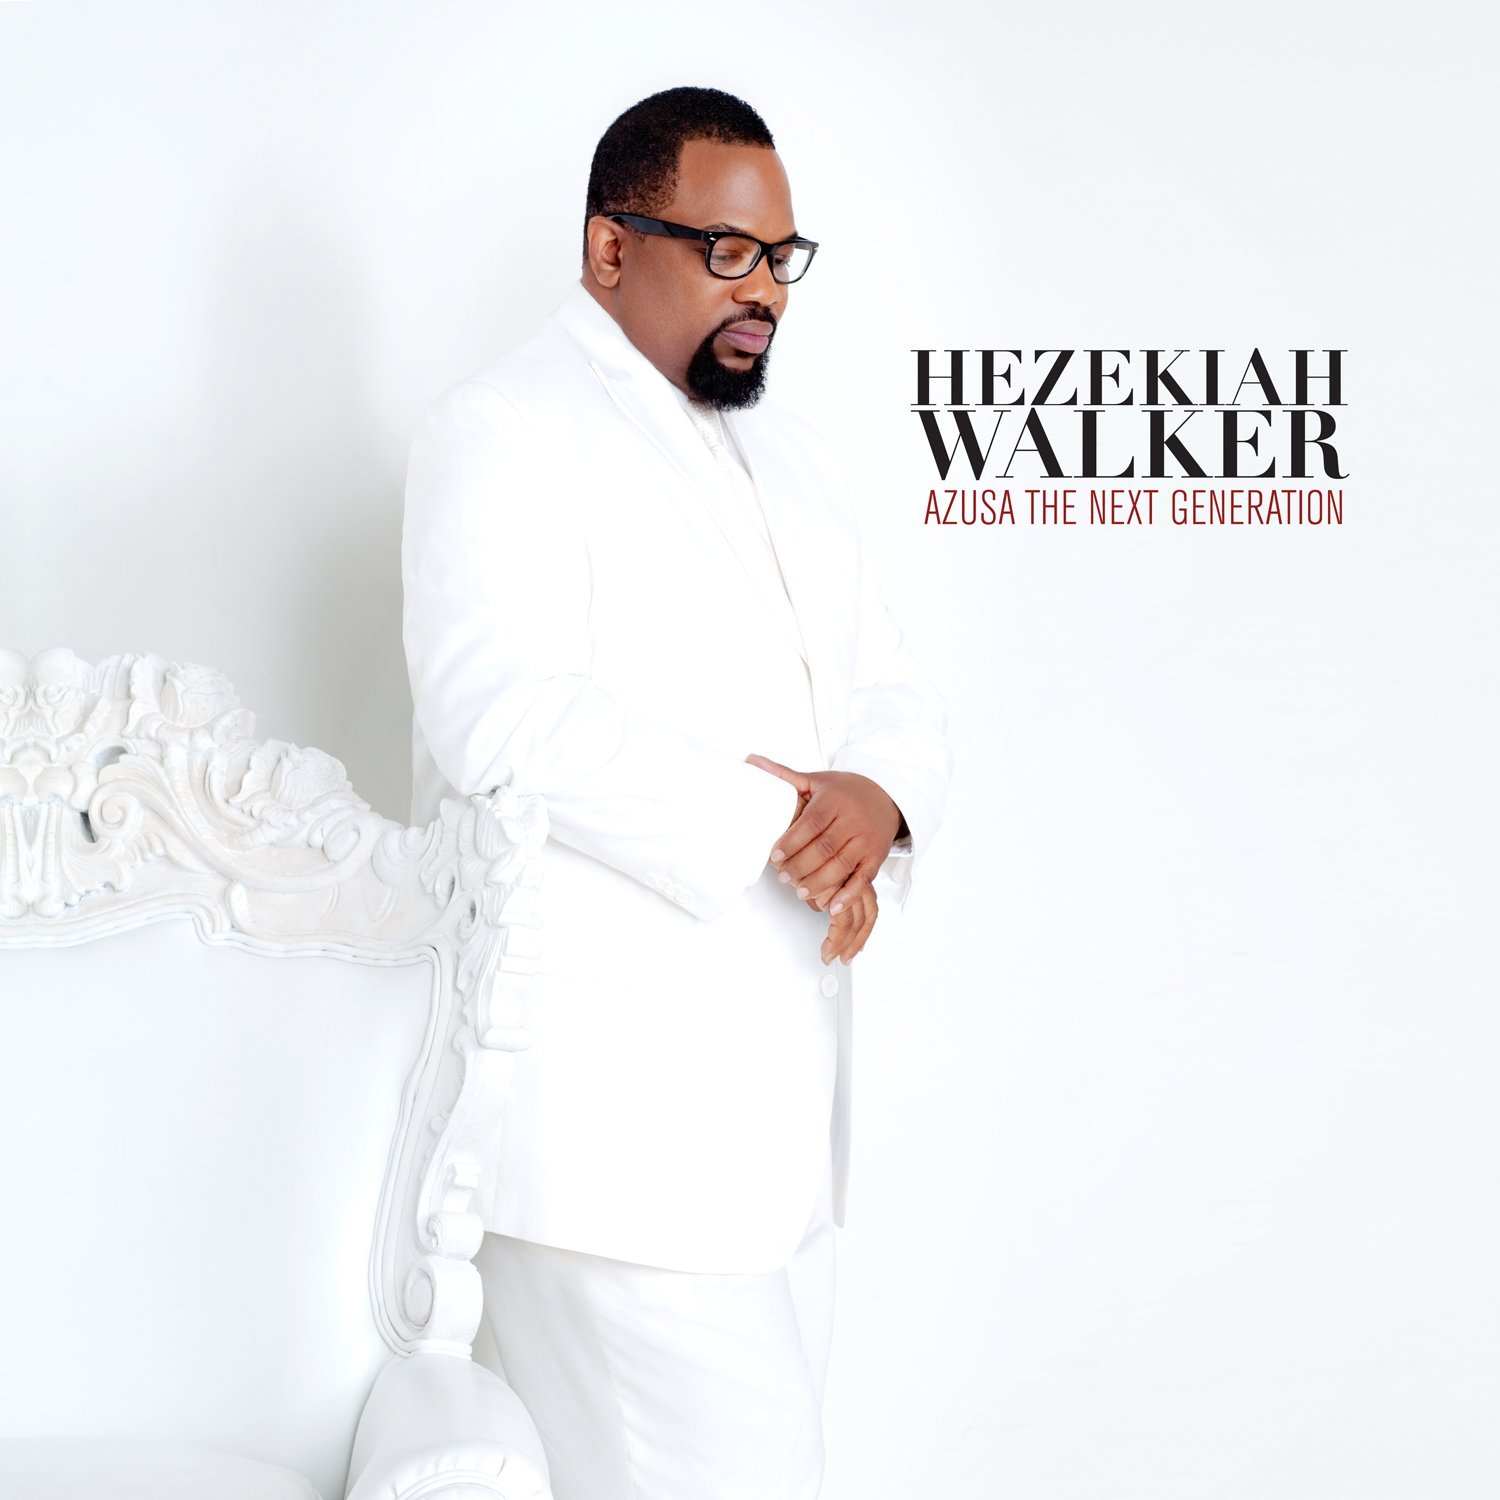 hezekiah-walker album cover